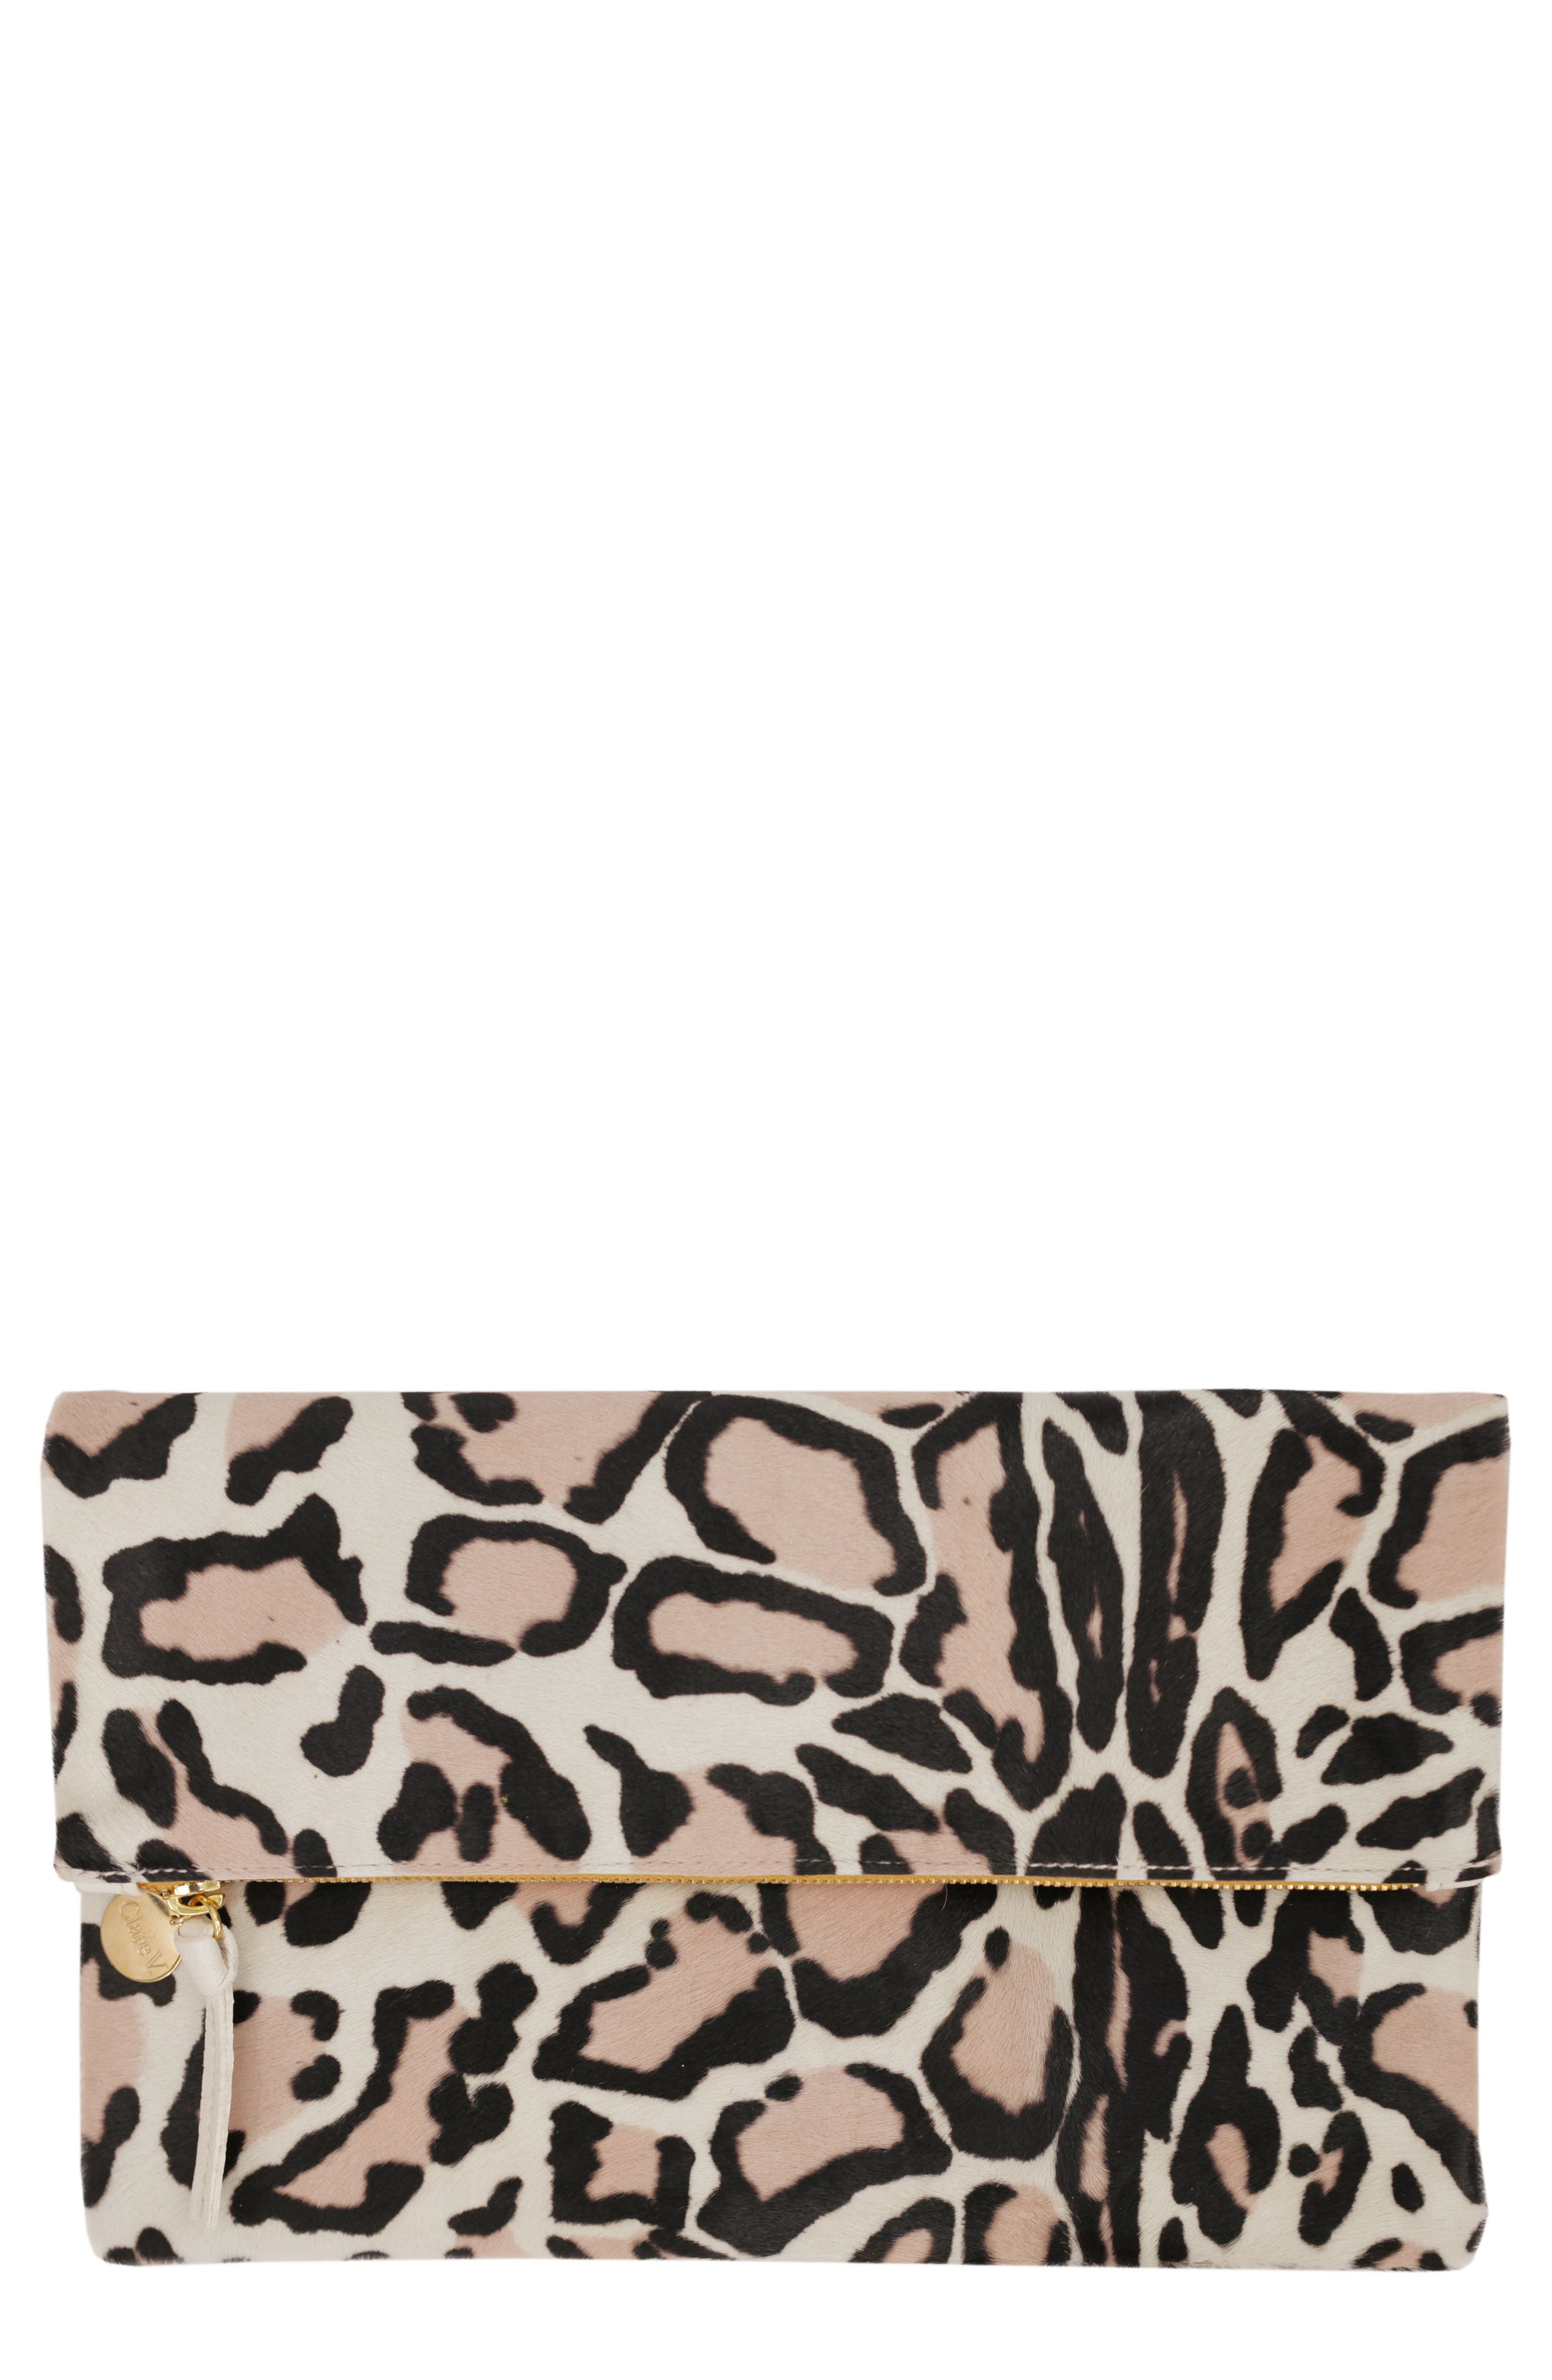 Clare V. Genuine Calf Hair Foldover Clutch